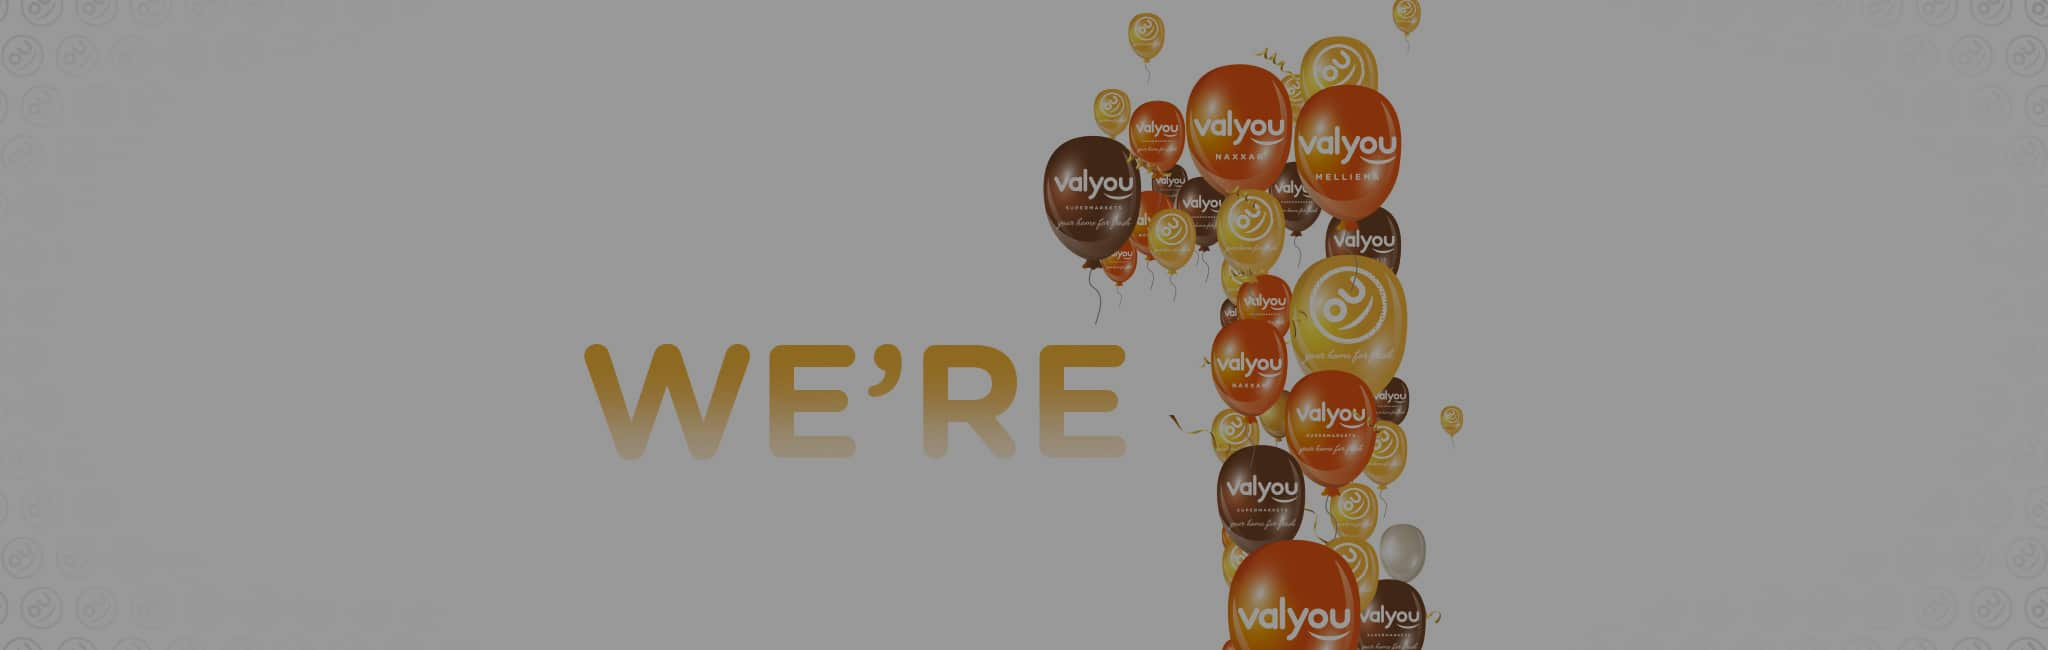 Valyou Supermarkets Celebrate First Year Anniversary